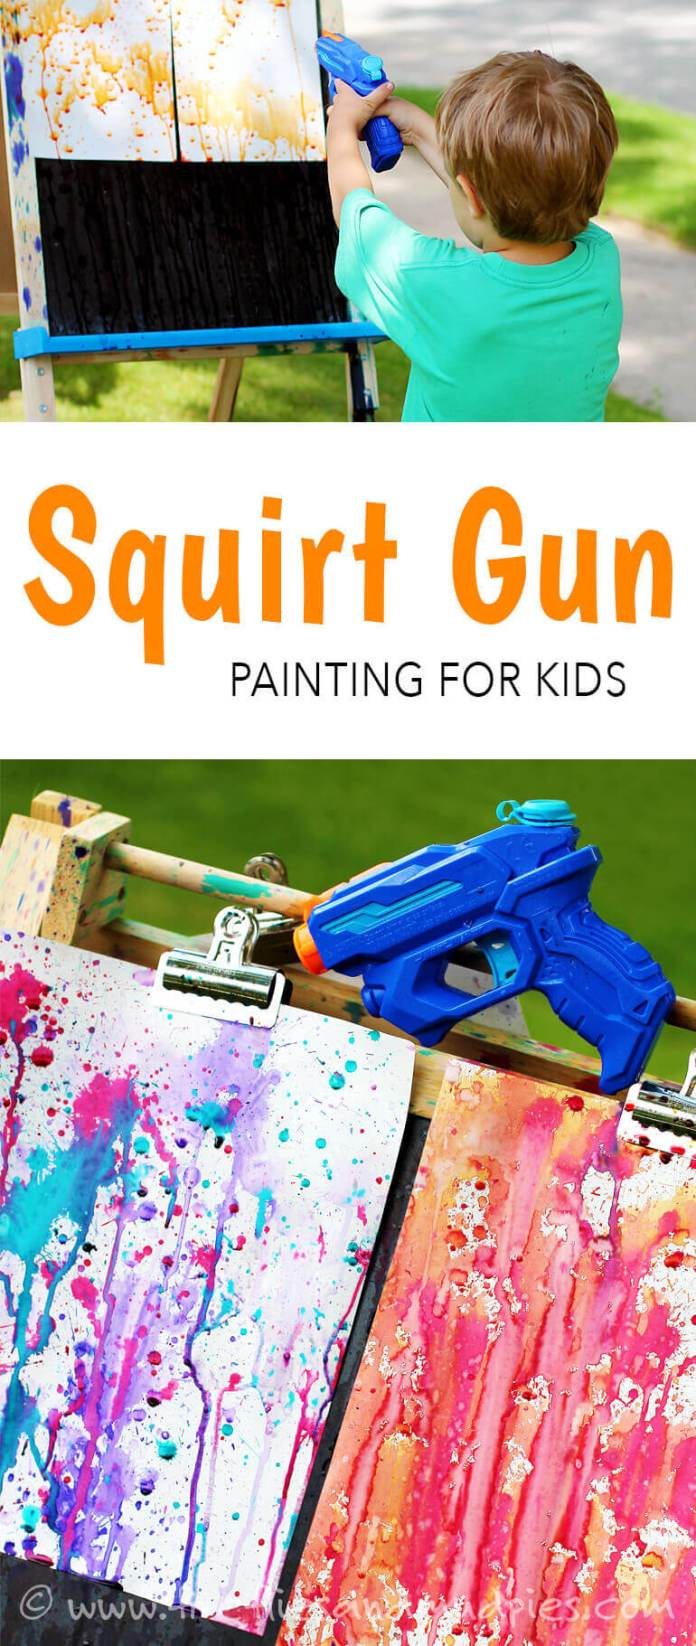 Outdoor Squirt Gun Painting for Kids